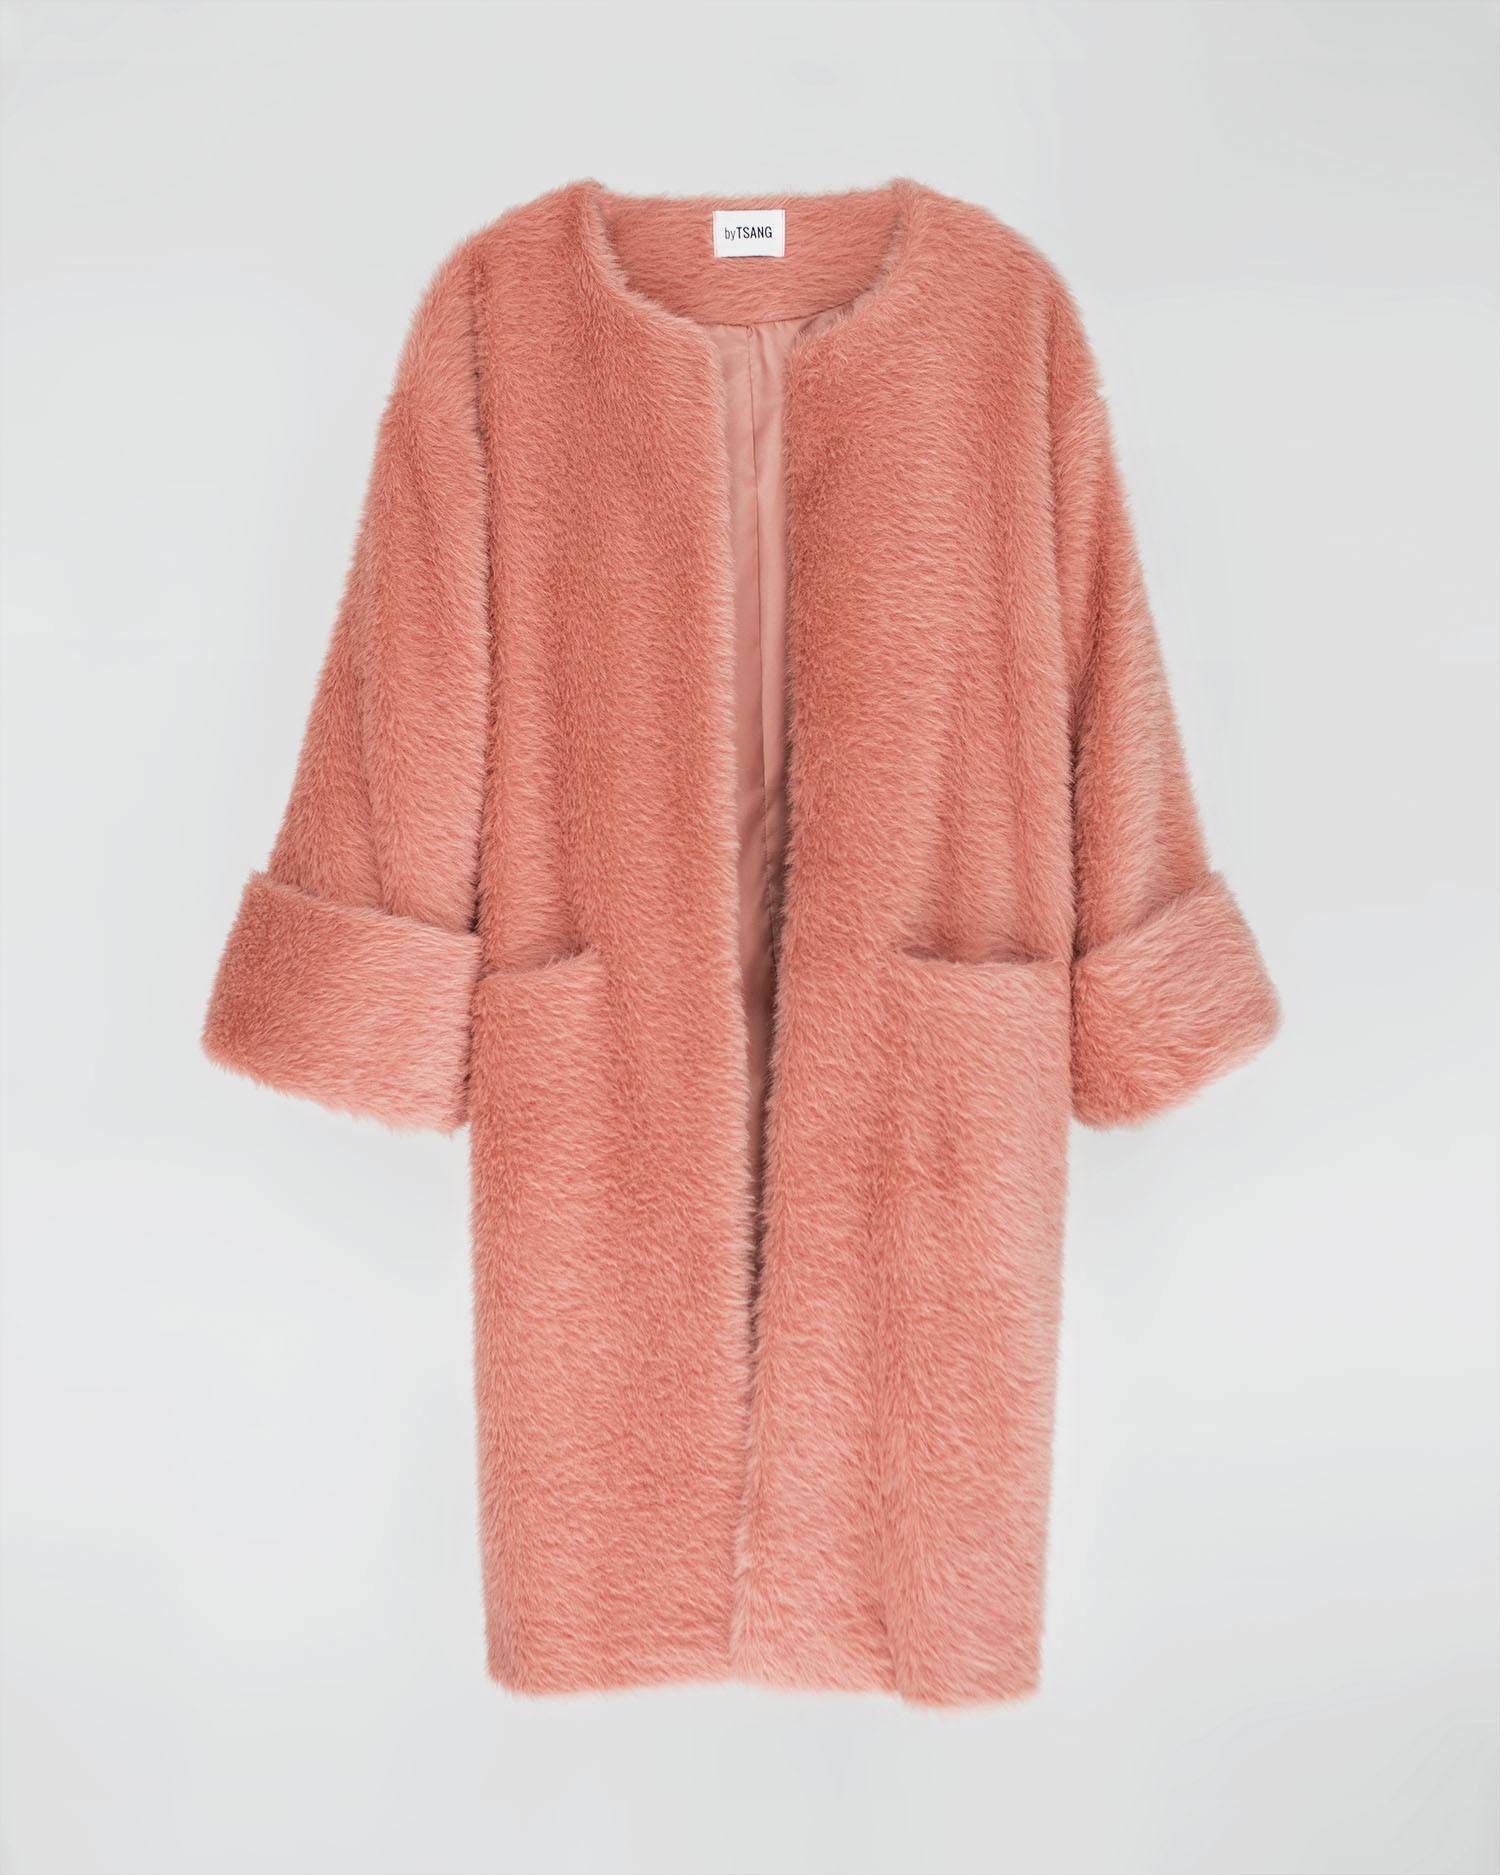 byTSANG season II fuzzy II cardigan coat in rose pink